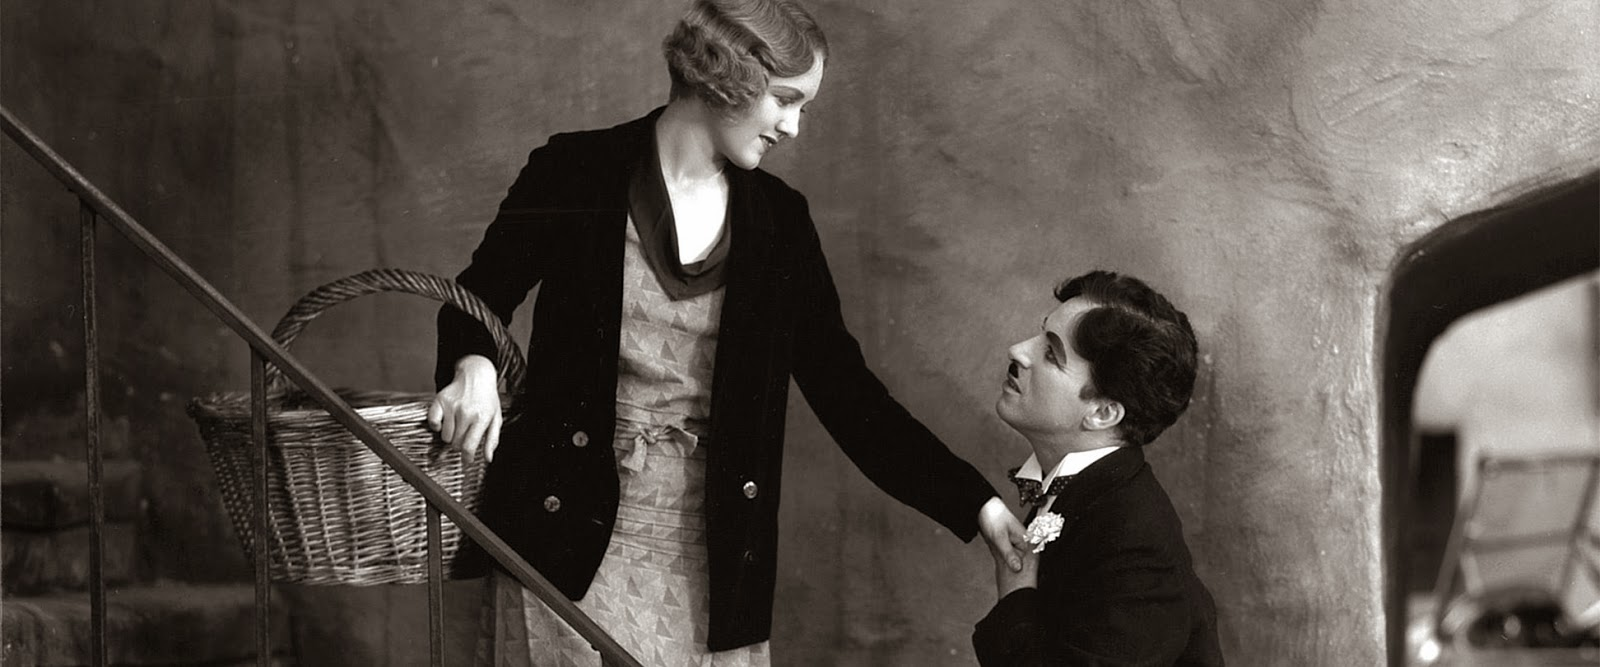 What Can an 87 Year Old Silent Movie Teach Us About Chasing Clients?